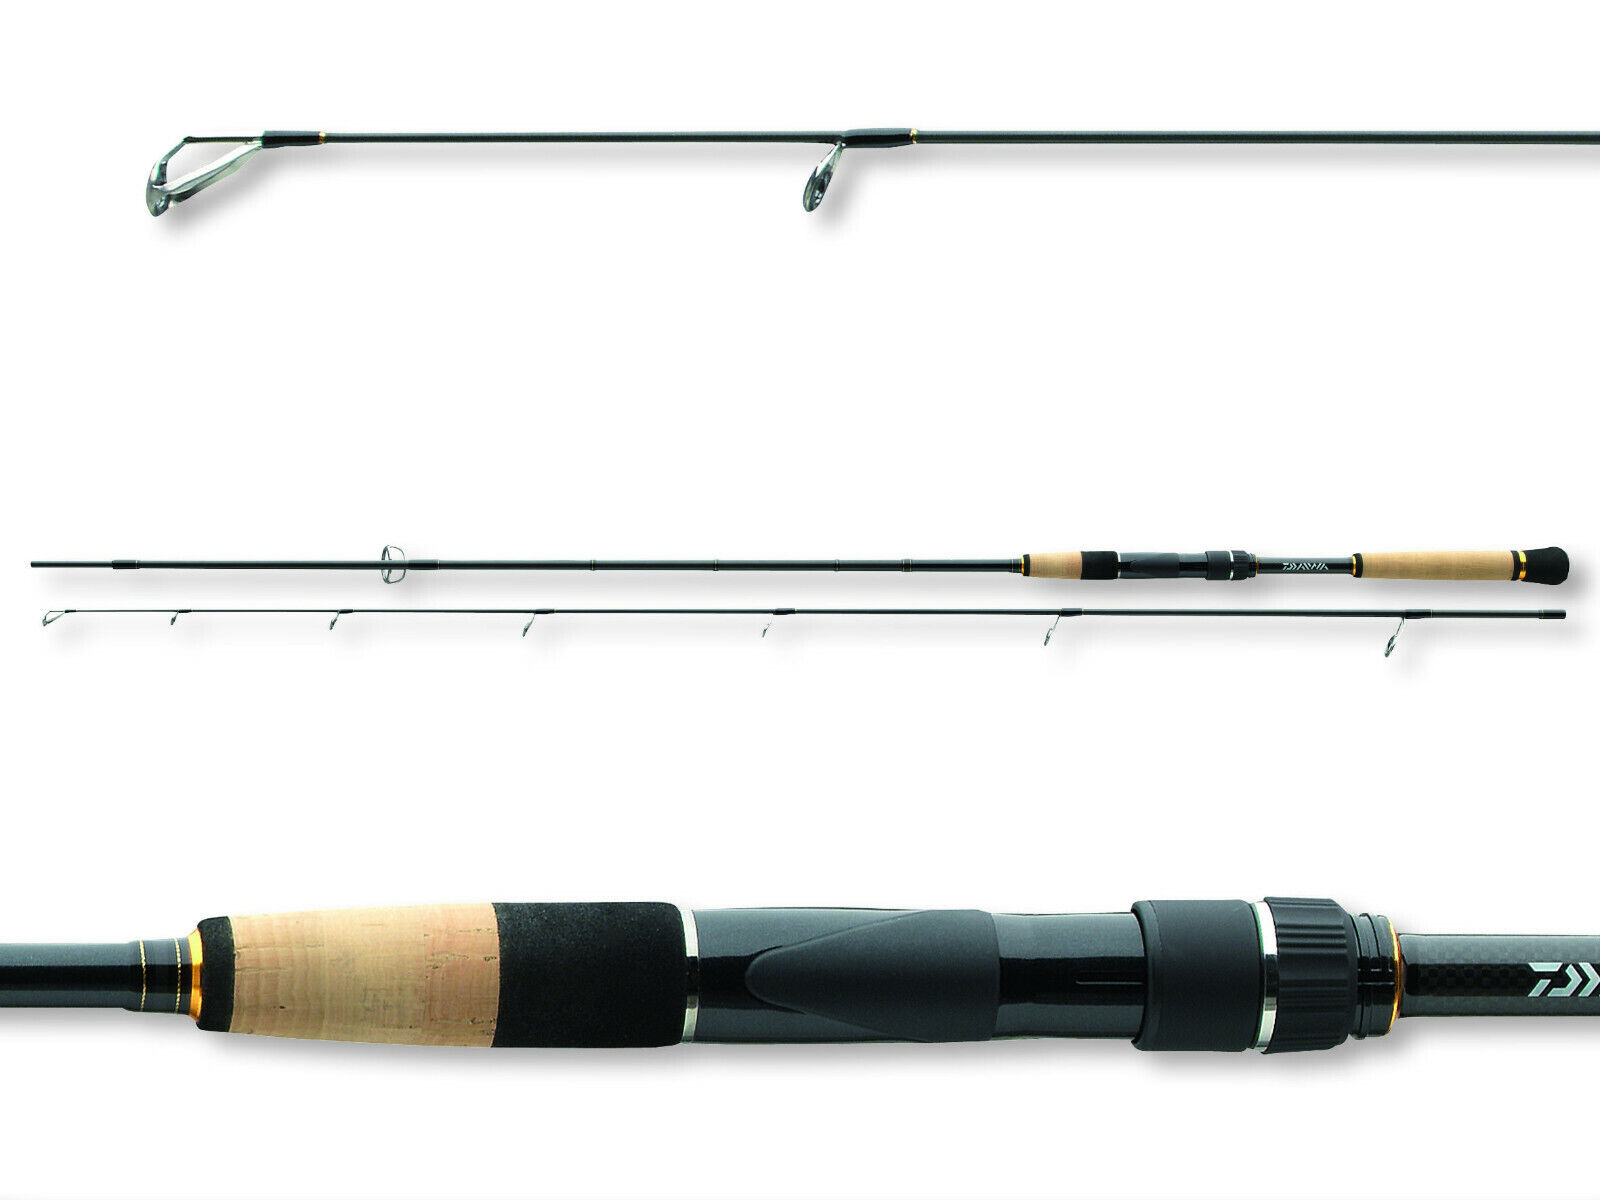 DAIWA Morethan Morethan Morethan SHAD Attack 2,70m 30-70g Spinning Gomma Pesce stadia 37173f